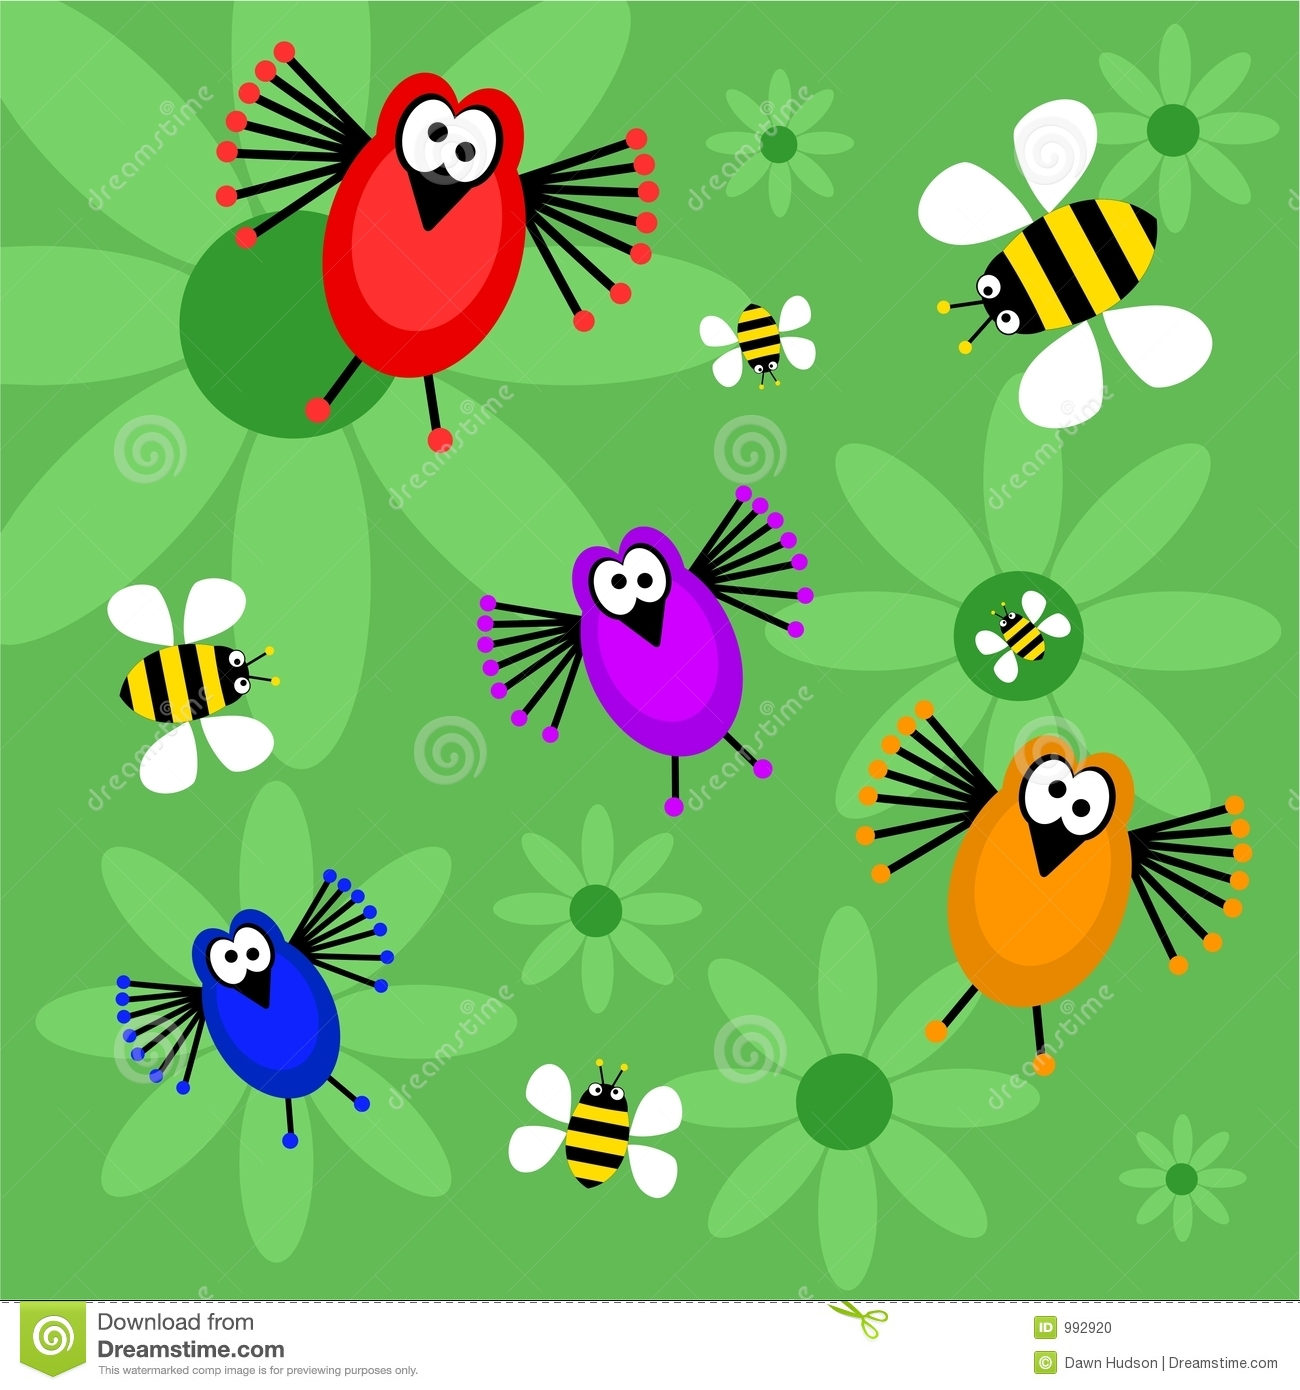 Birds and bees stock photo. Image of illustrations